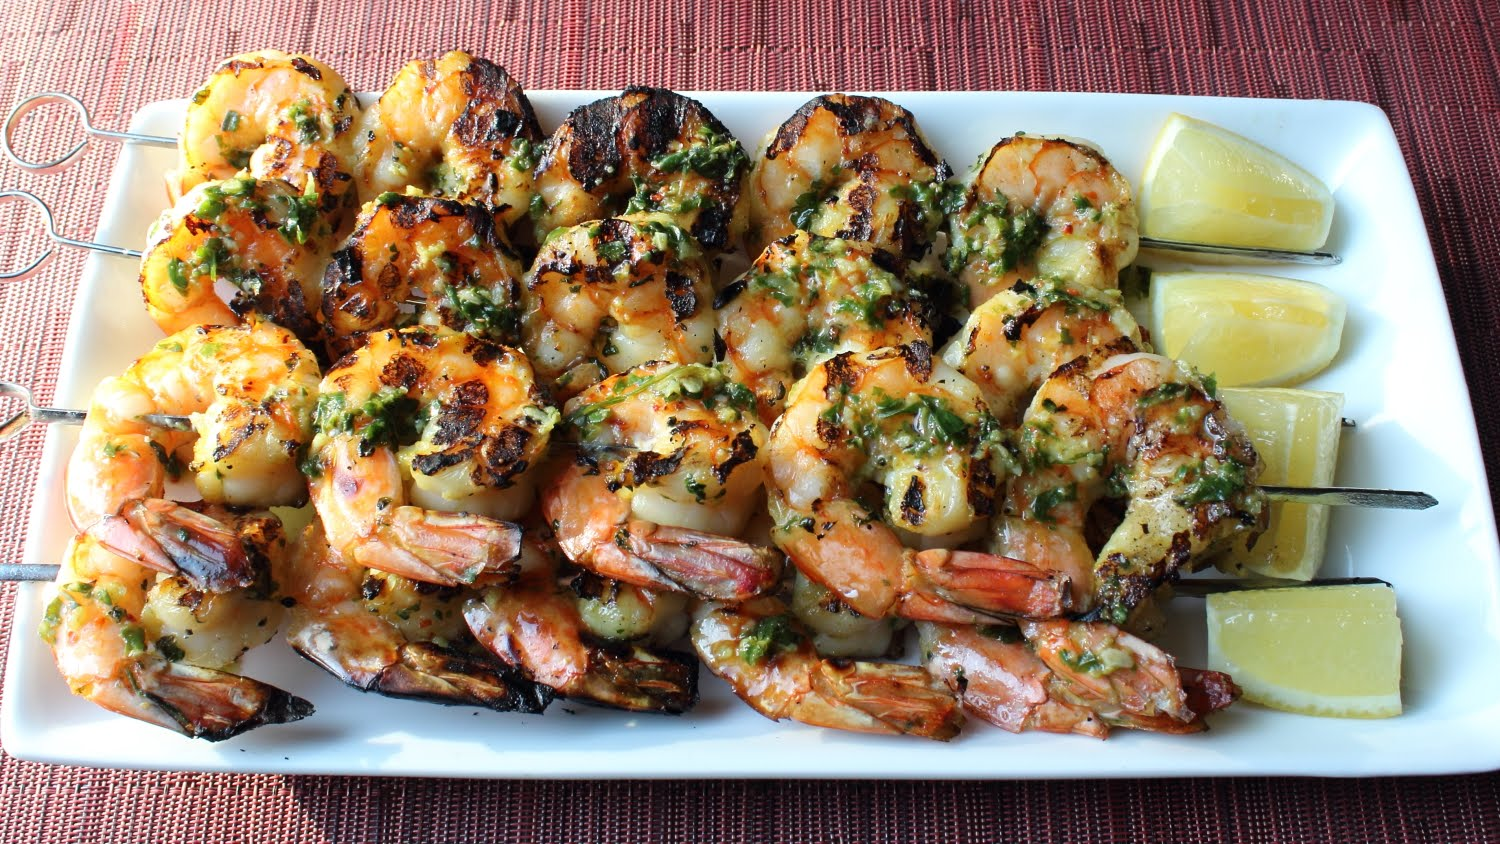 Grilled Garlic & Herb Shrimp - How to Make Grilled Garlic Herb Shrimp ...